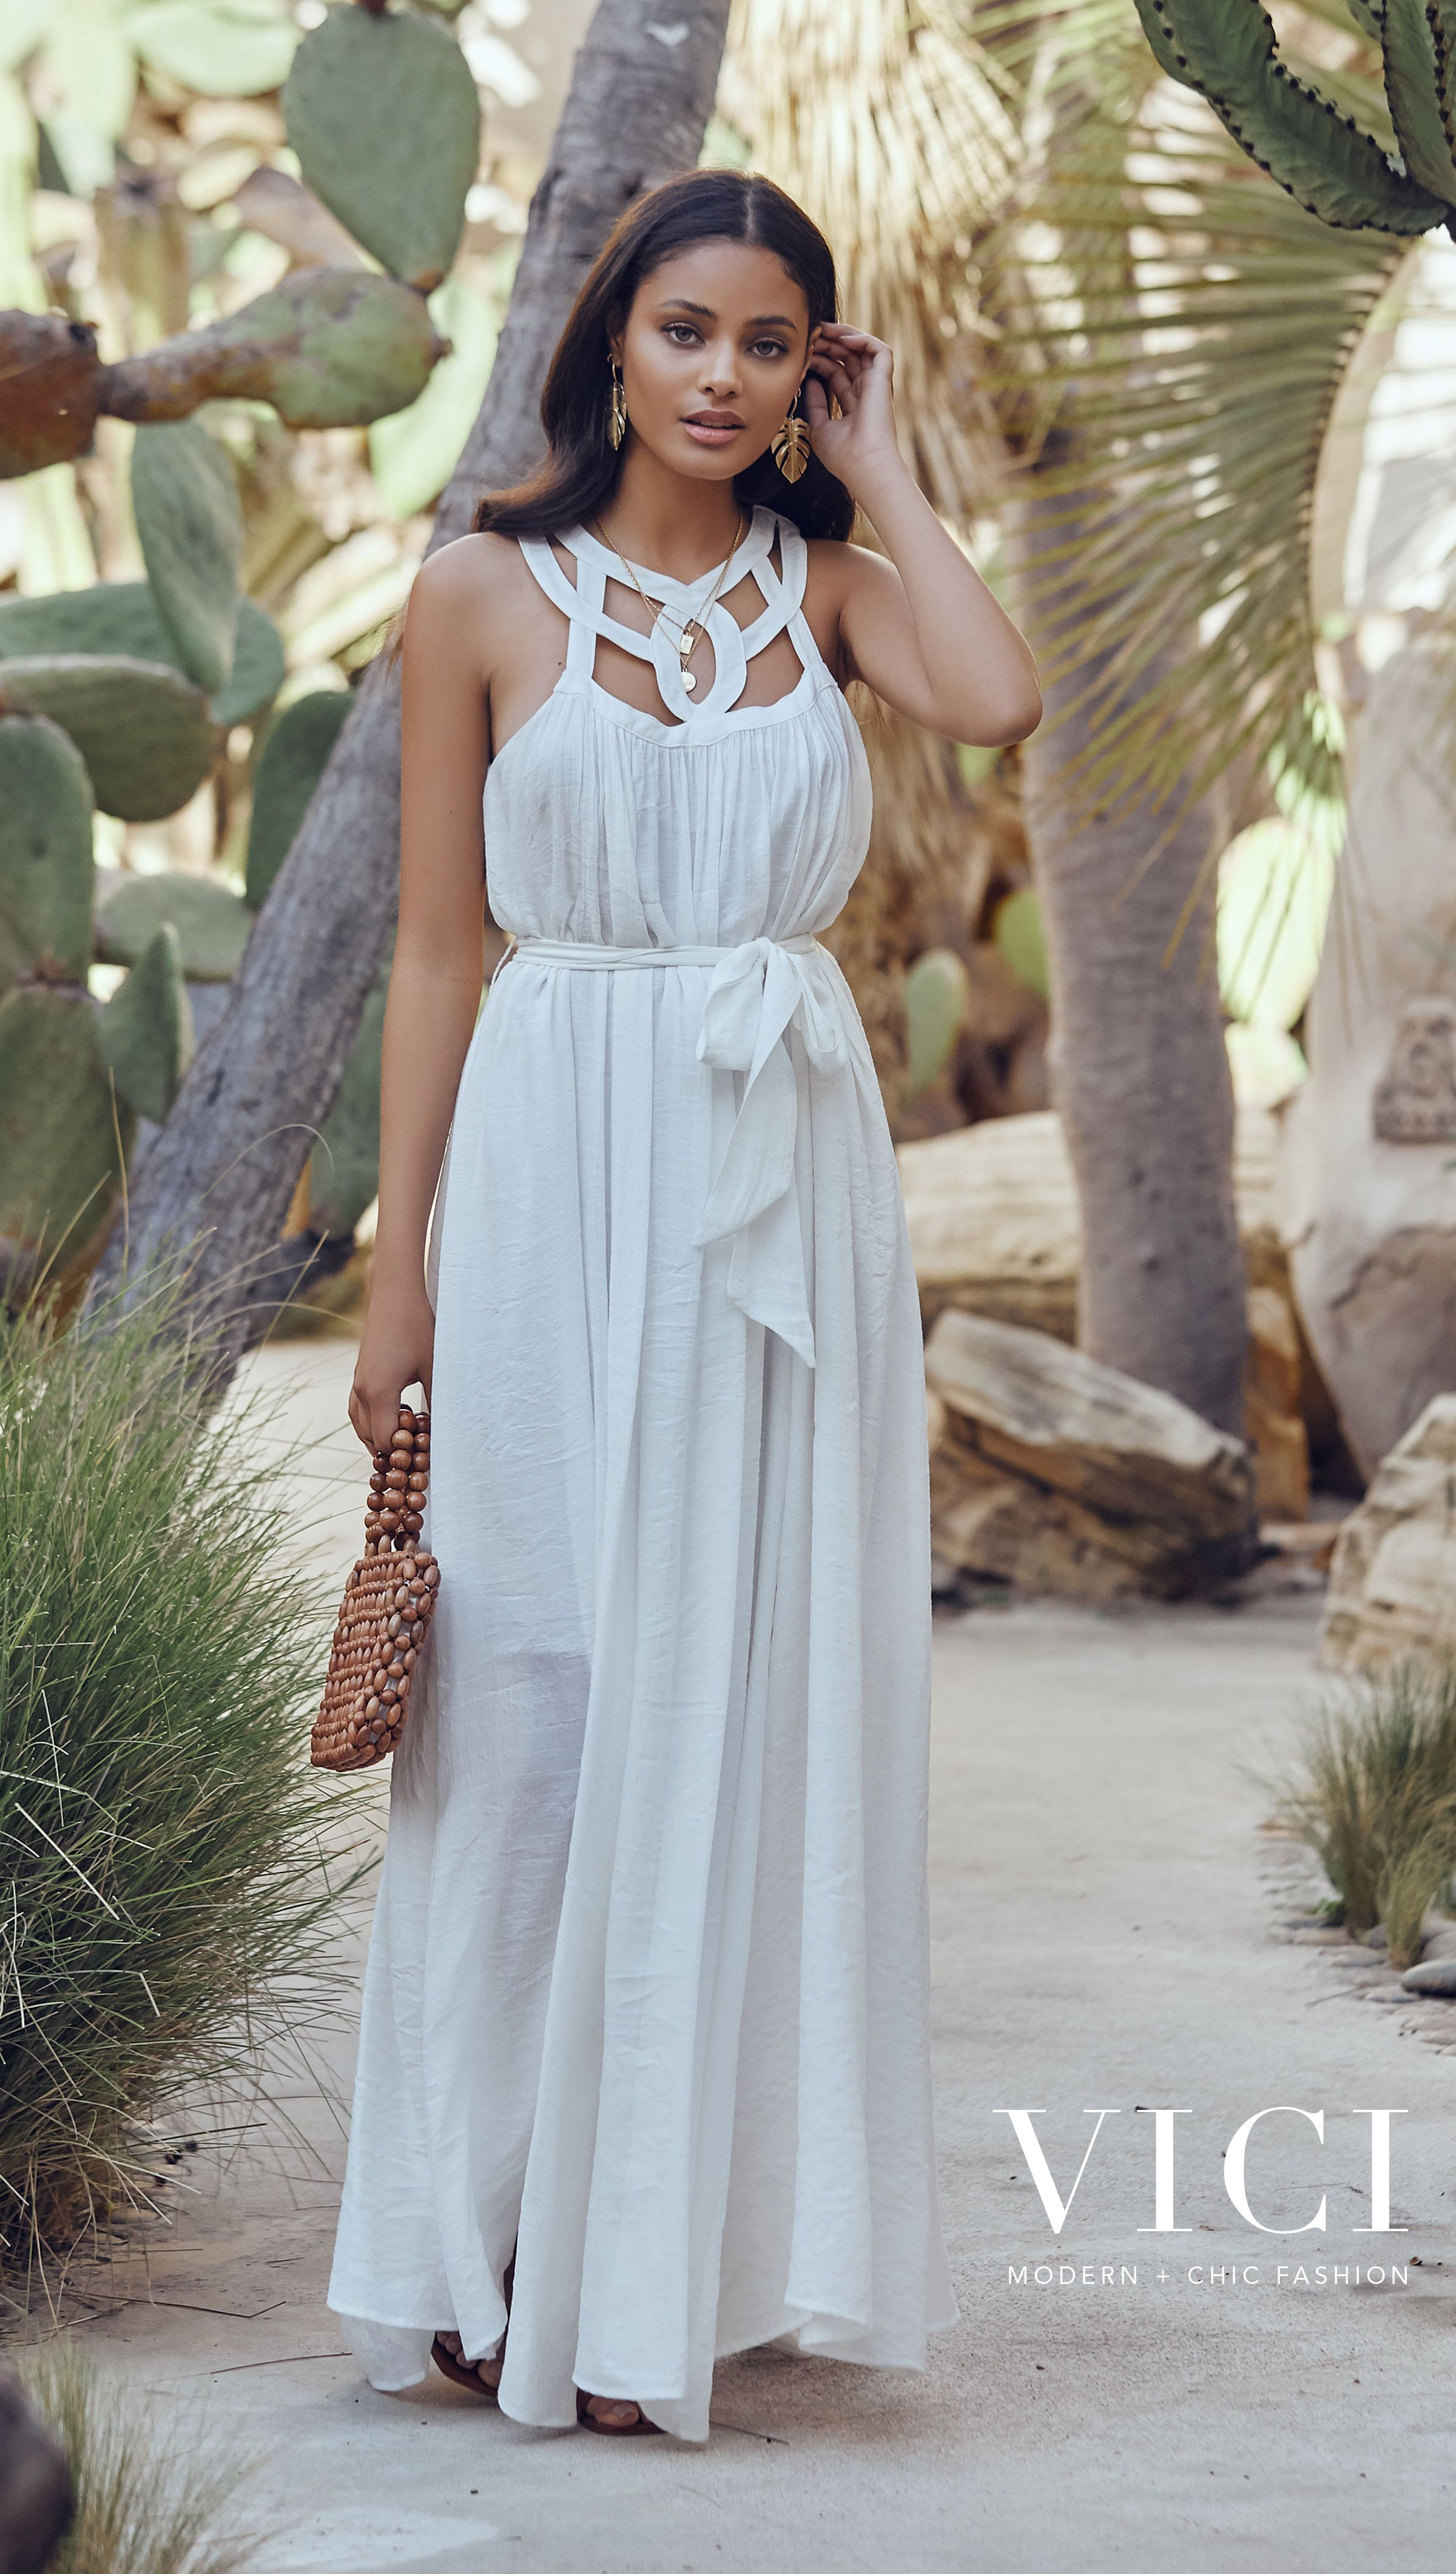 Vici Shop Must Have Summer Dresses Save 20 With Code May20 Dresses Charming Dress White Maxi Dresses [ 4242 x 2400 Pixel ]